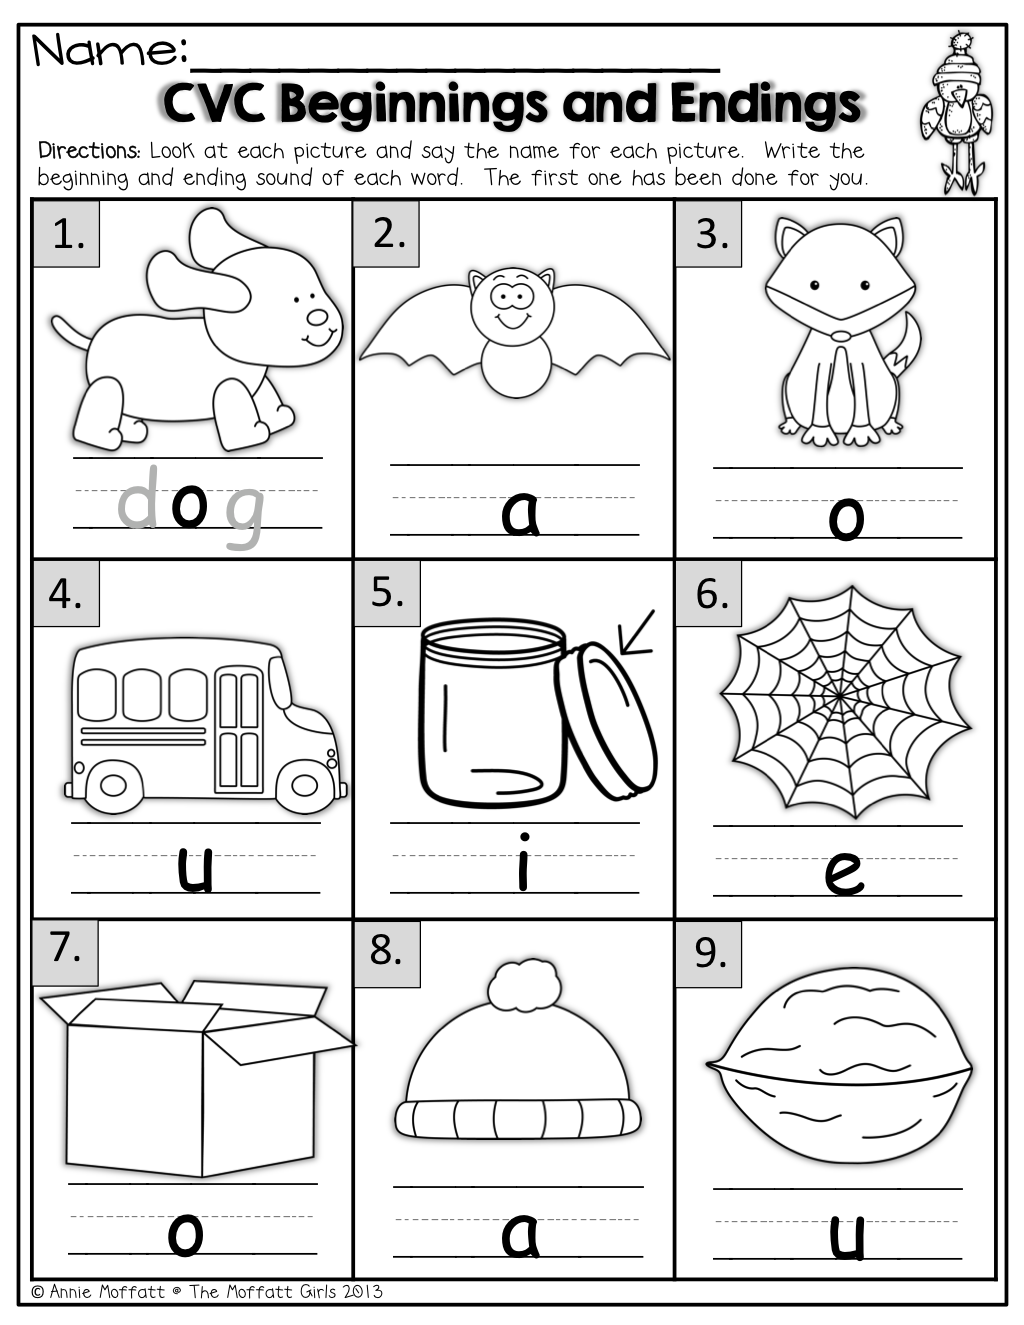 Worksheet Kindergarten Beginning Sounds beginning and ending sounds kinderland collaborative sounds